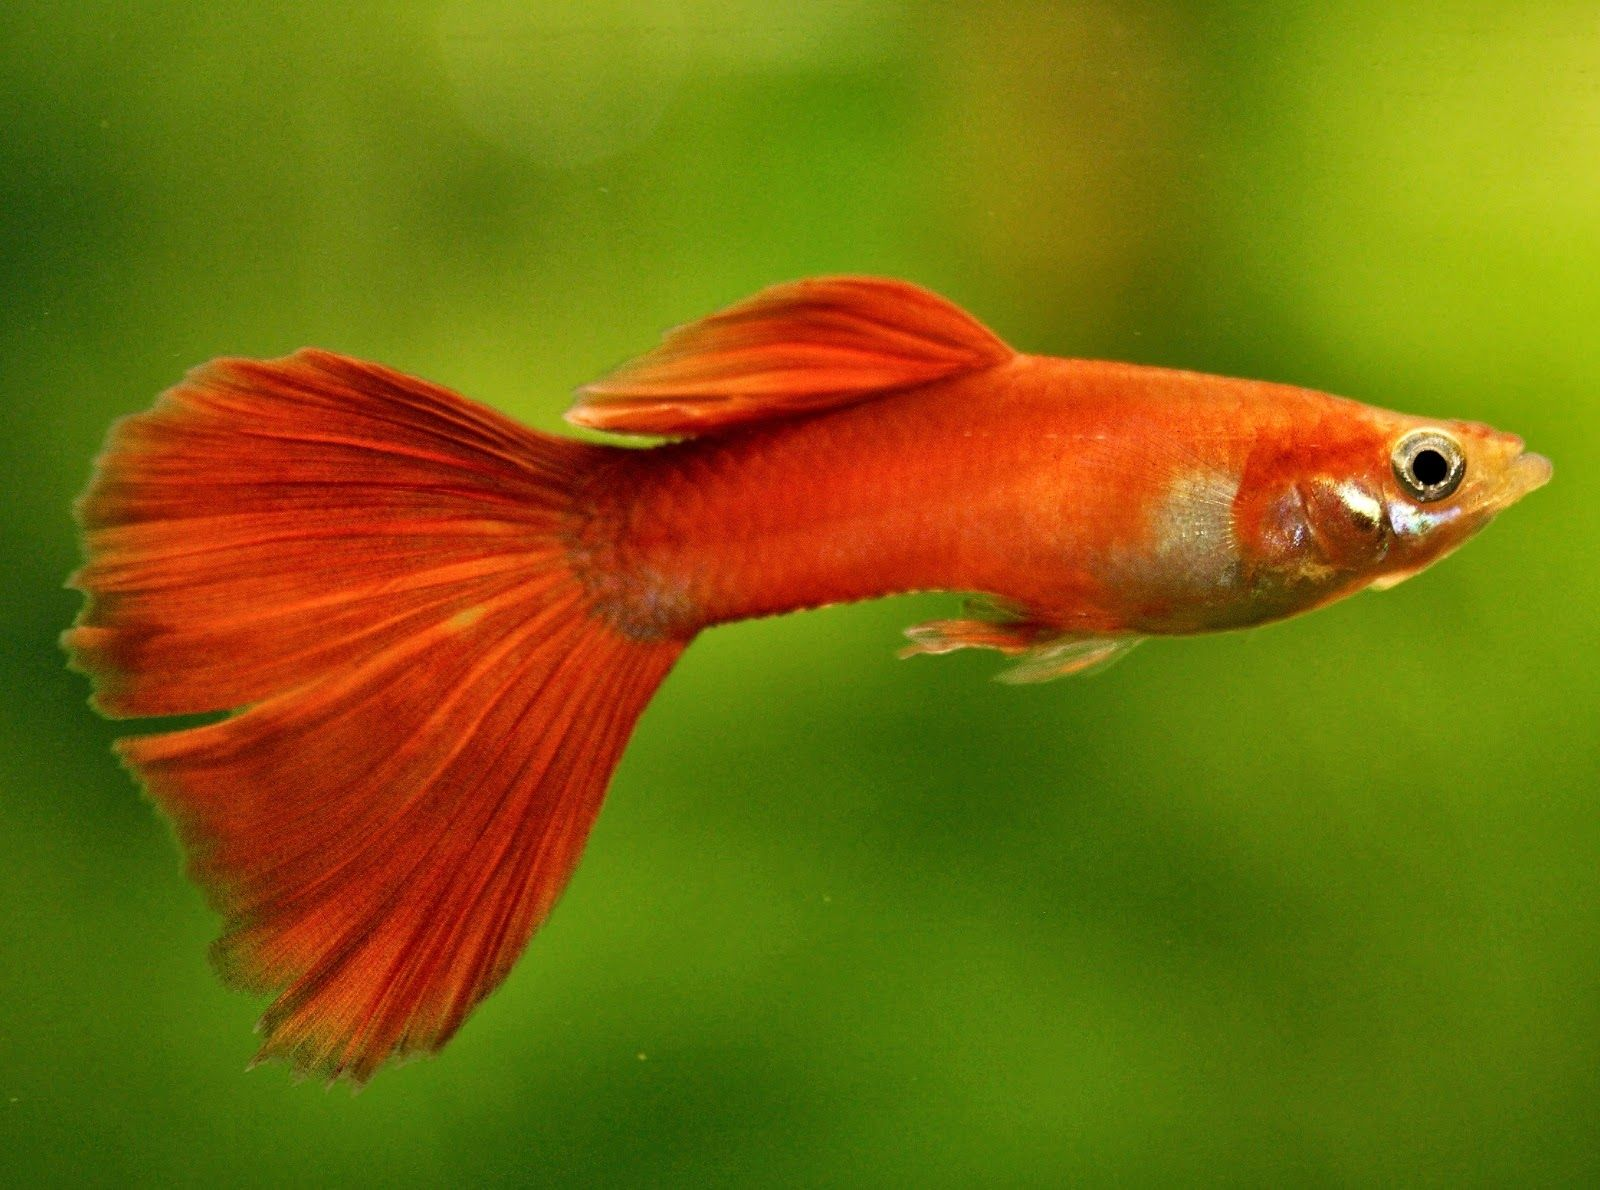 Guppy Hd Wallpapers Hd Wallpapers Inn Painted Wine Glasses